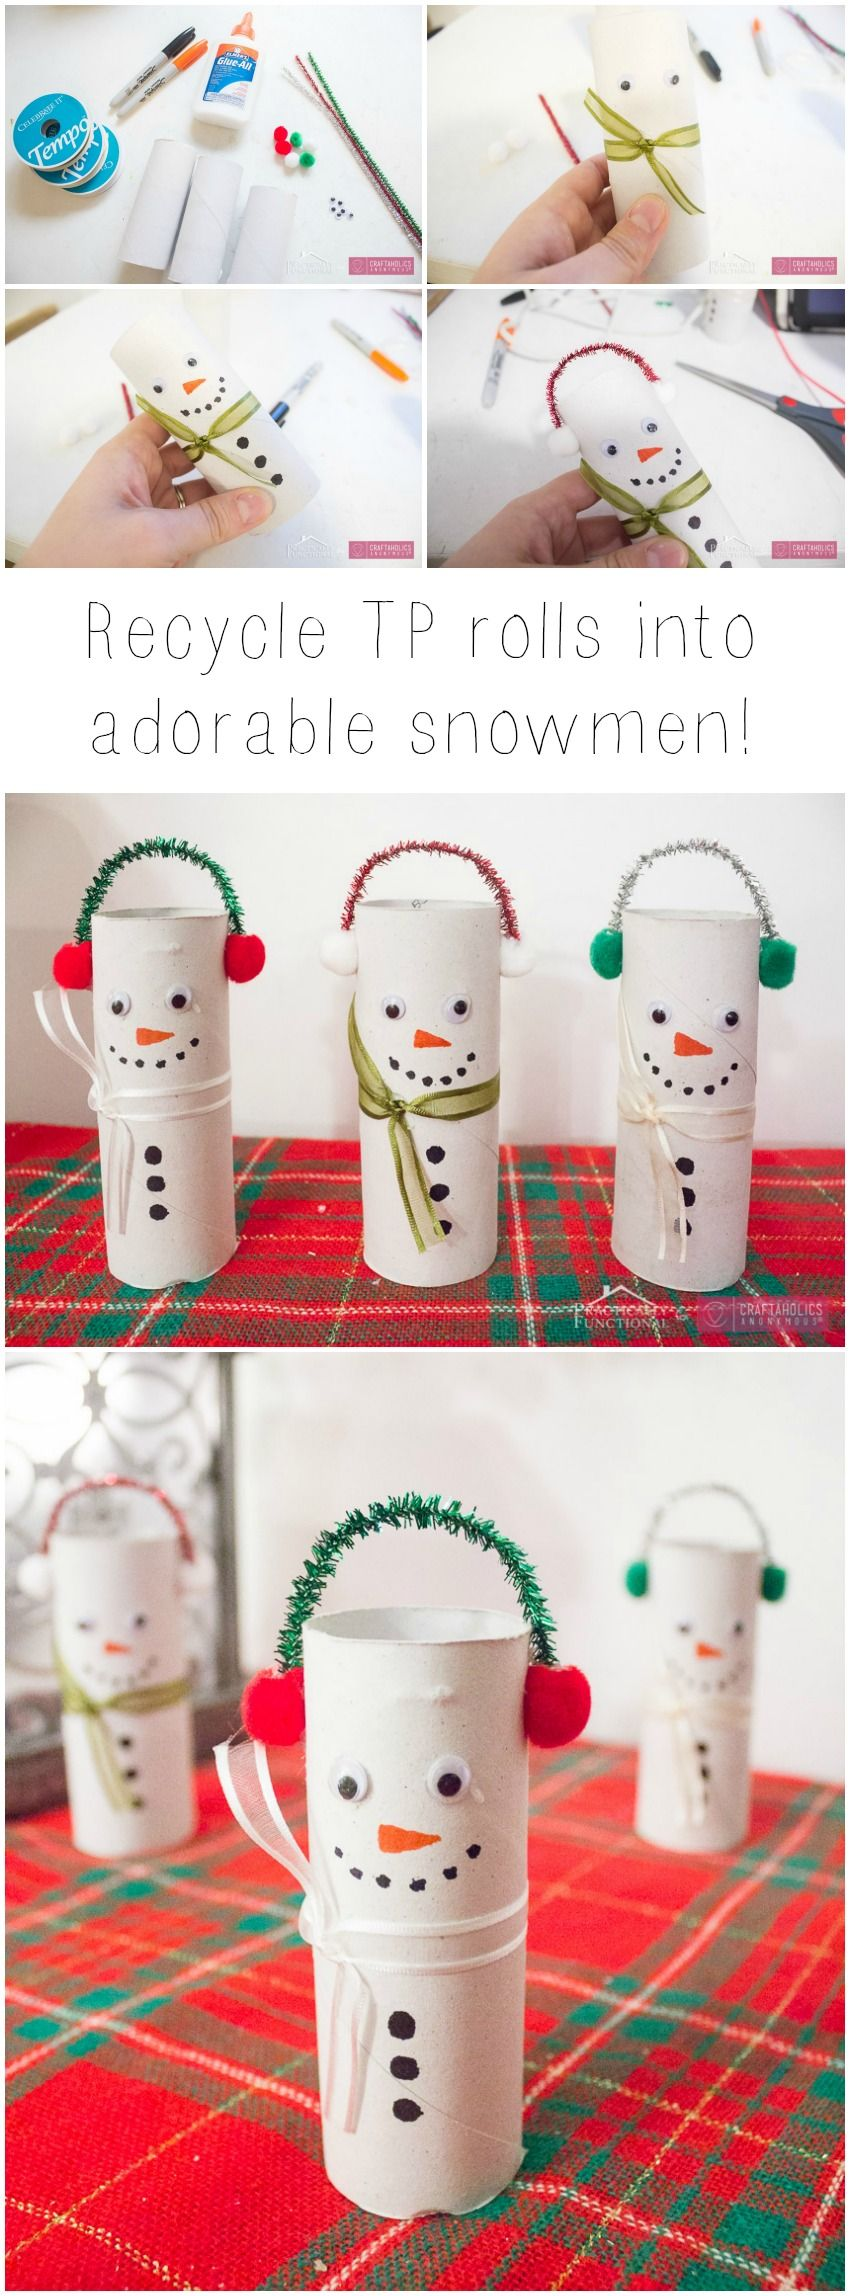 Diy toilet paper roll snowmen toilet paper roll toilet Christmas crafts for kids to make at home